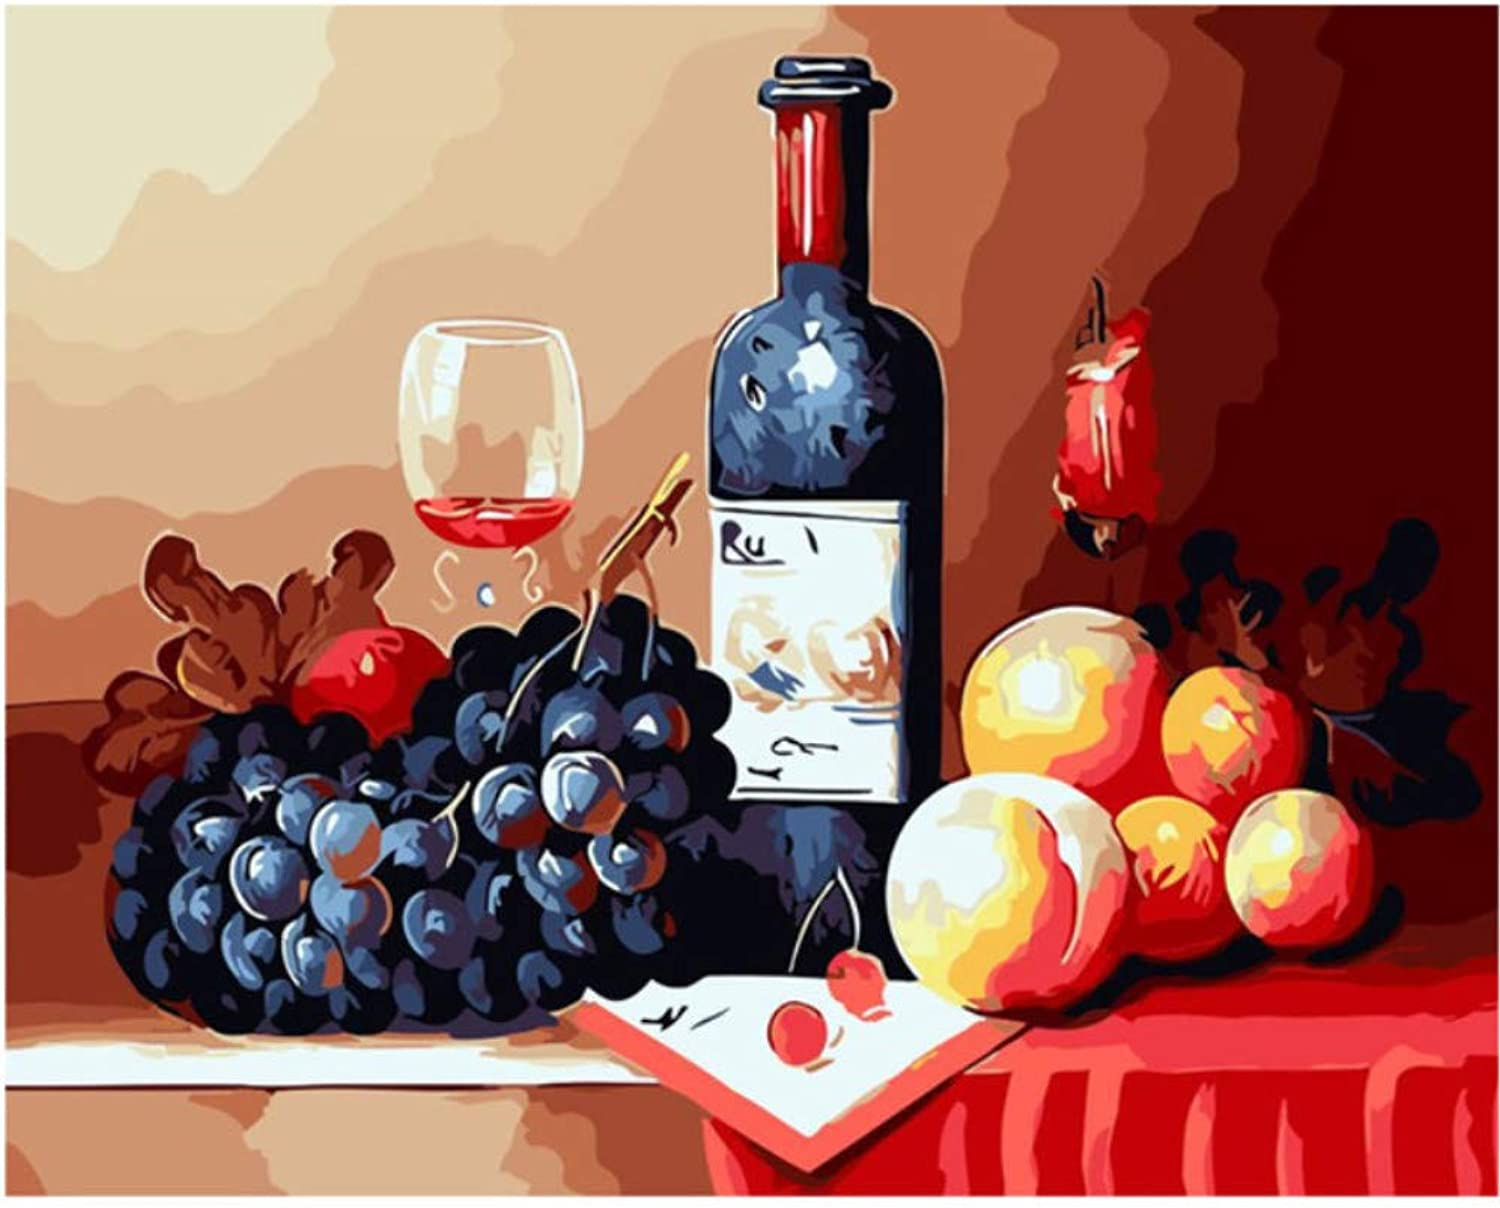 Red Wine Grape Fruits Drawing by Number Pictures Paints Painting by Numbers Kits Wall Art Acrylic Picture Gift Room Decor 50x60CM